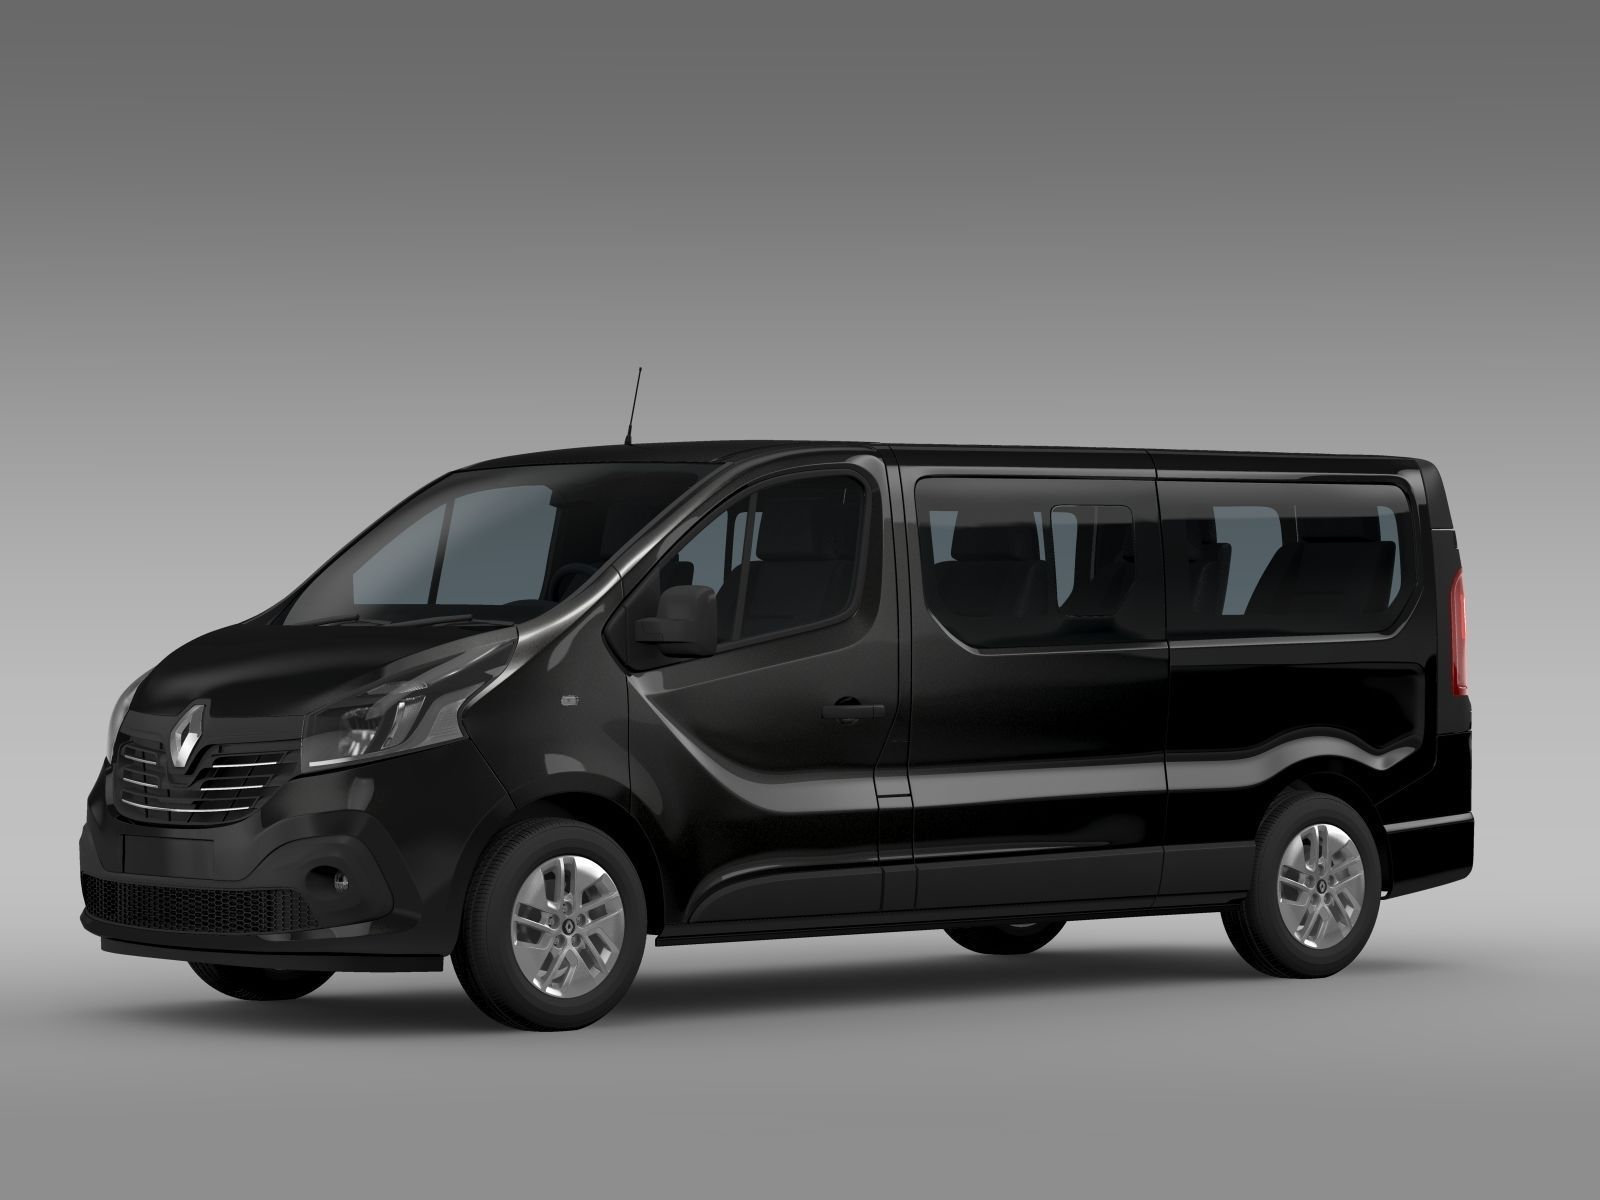 renault trafic minibus l2h1 2015 3d model max obj 3ds fbx c4d lwo lw lws. Black Bedroom Furniture Sets. Home Design Ideas